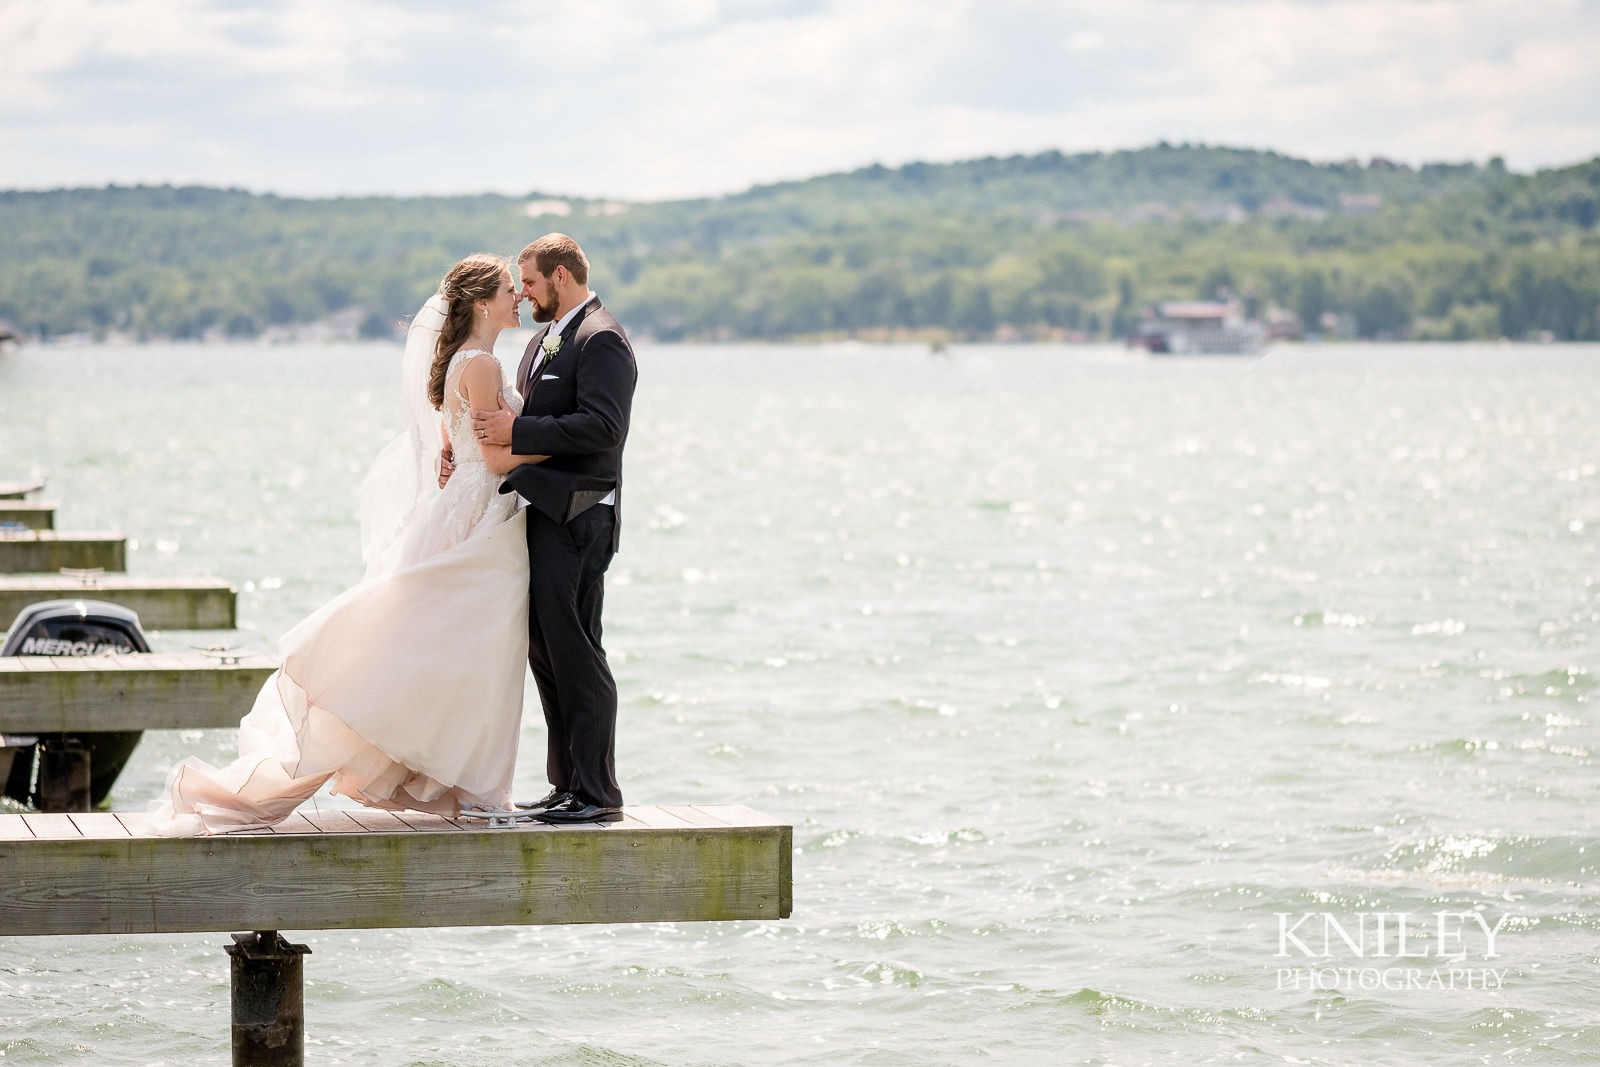 046 - Canandiagua NY wedding pictures - Kershaw Park - Canandiagua Lake - XT2B2675.jpg